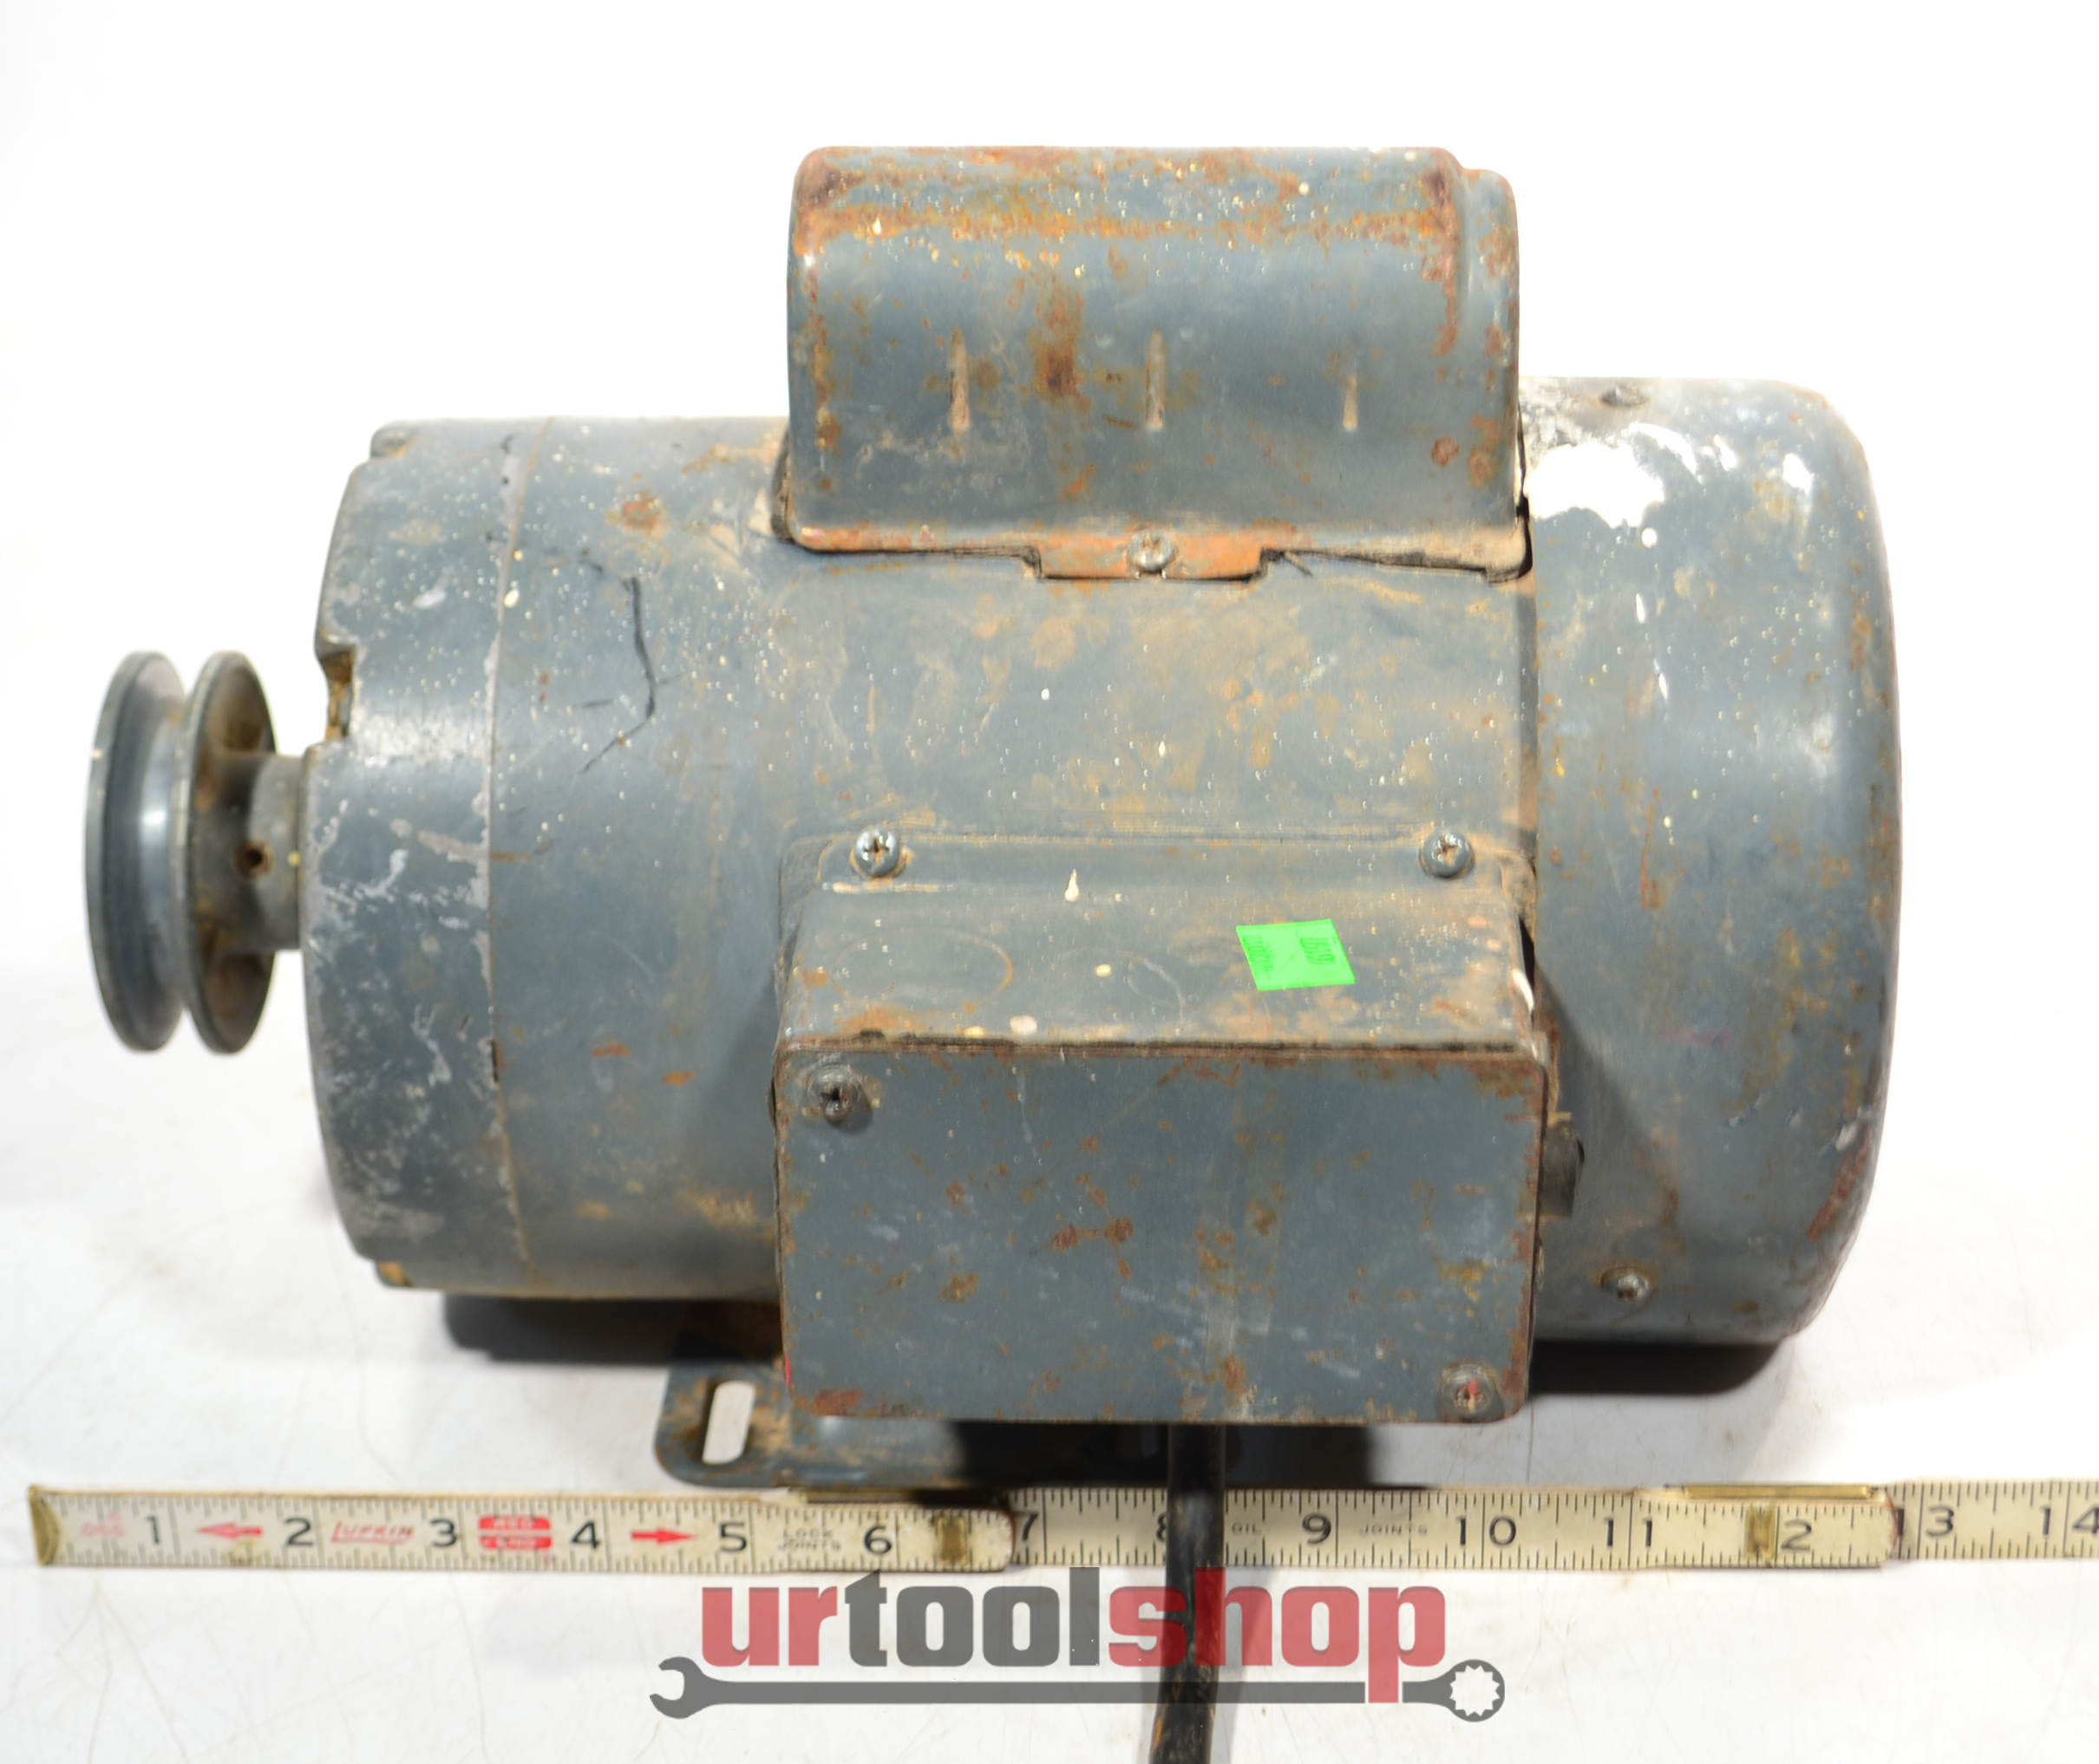 Rockwell 62 042 10 contractor table saw motor 1 1 2 hp for 10 table saw motor